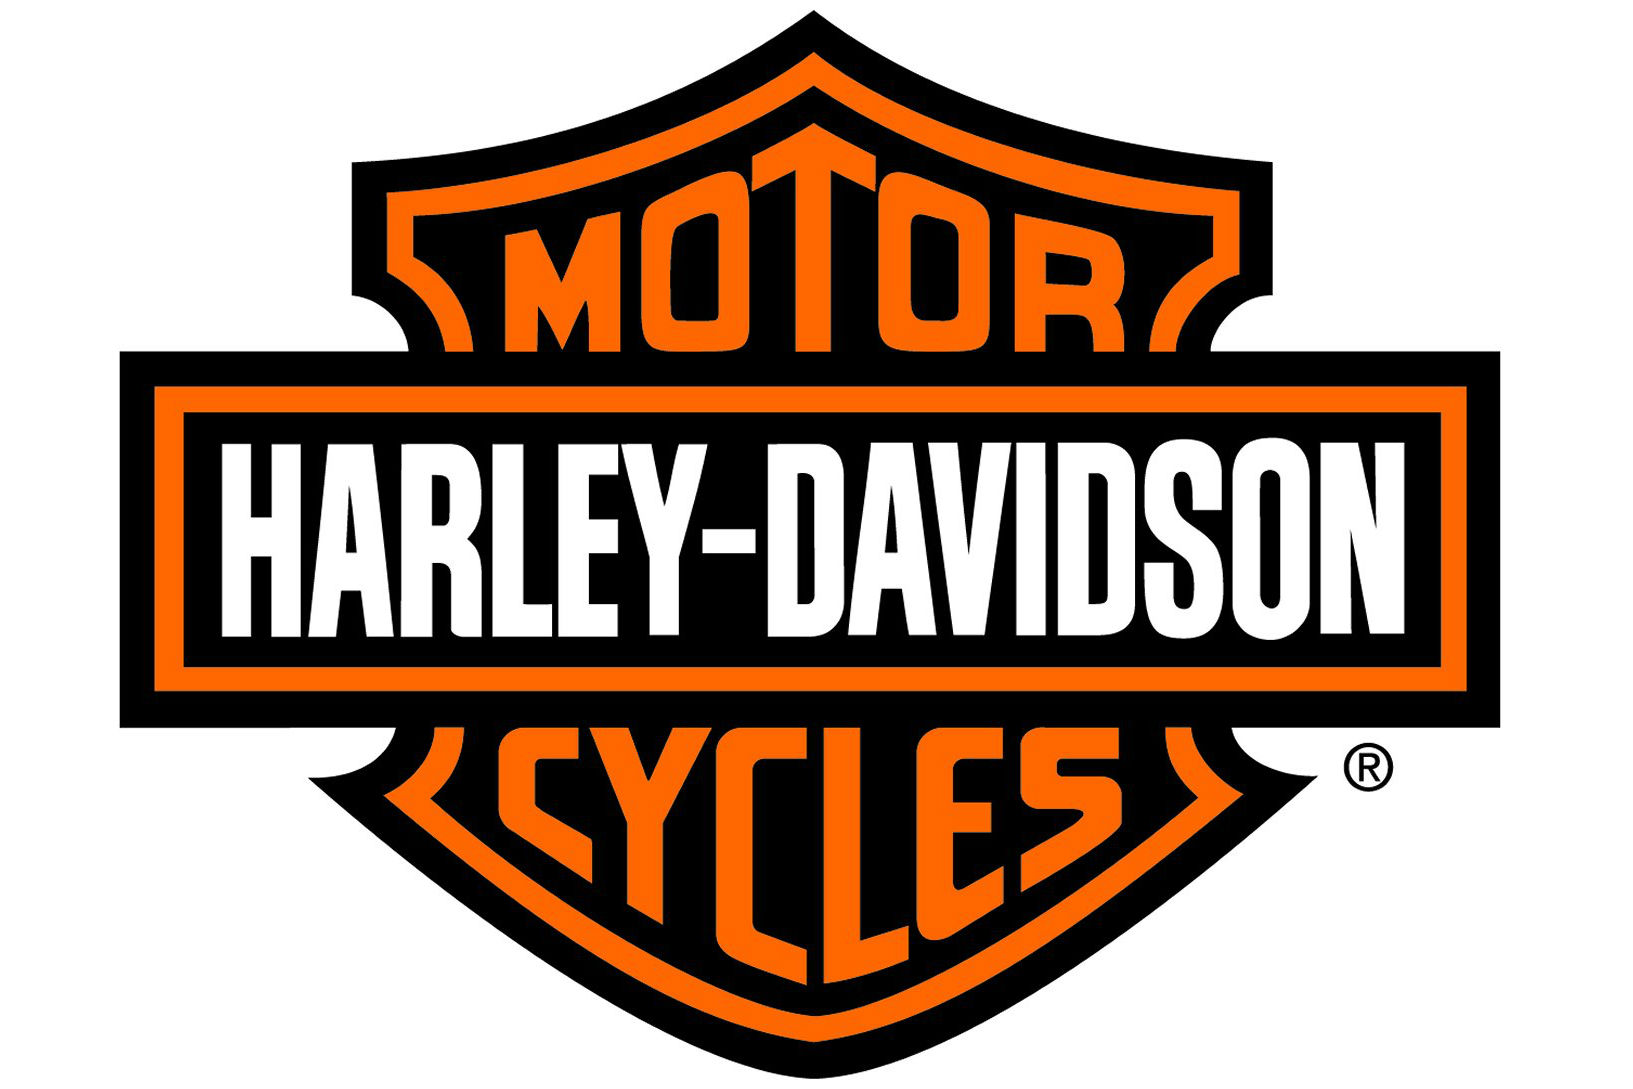 This is why America loves Harley-Davidson